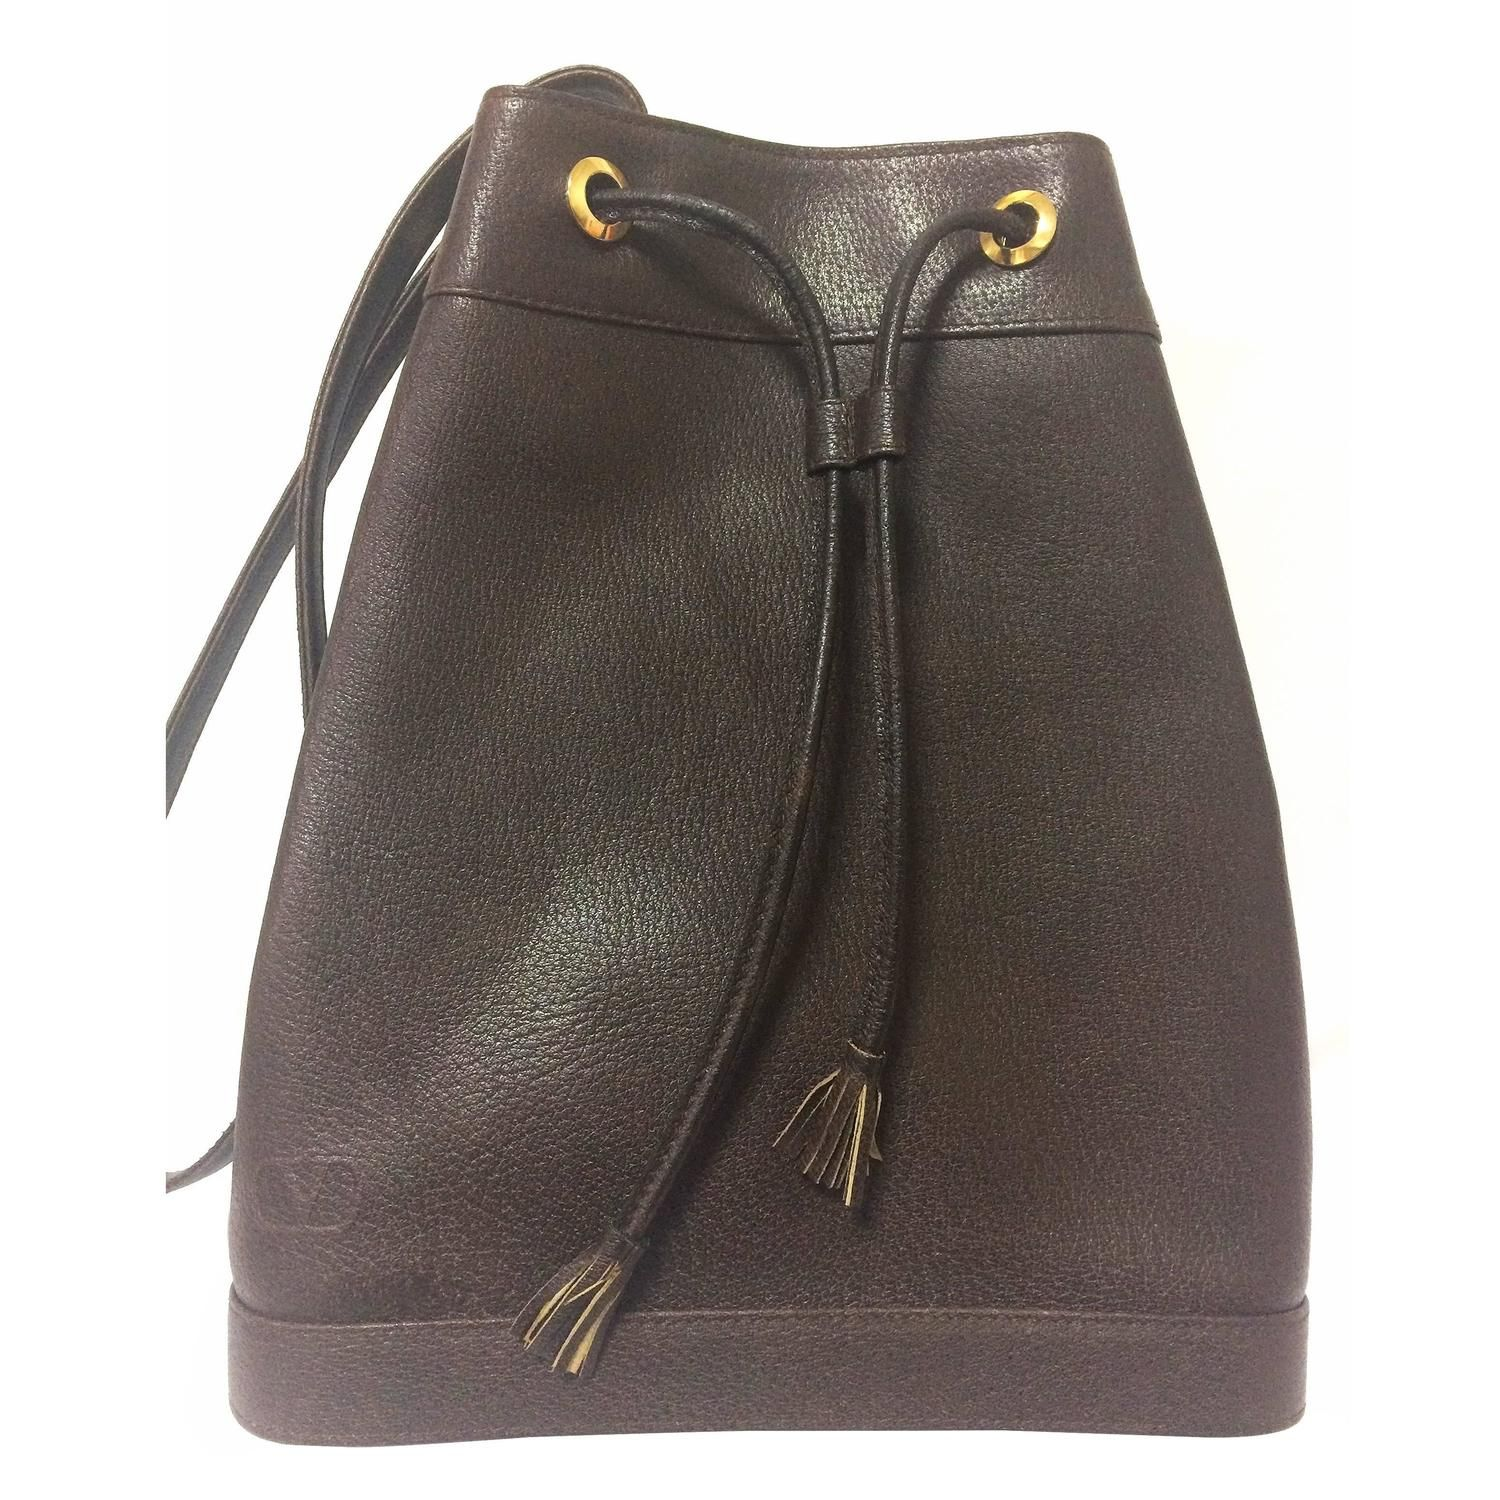 Vintage Valentino Garavani Dark Brown Leather Hobo Bucket Shoulder Bag Brown Leather Hobo Vintage Valentino Designer Shoulder Bags